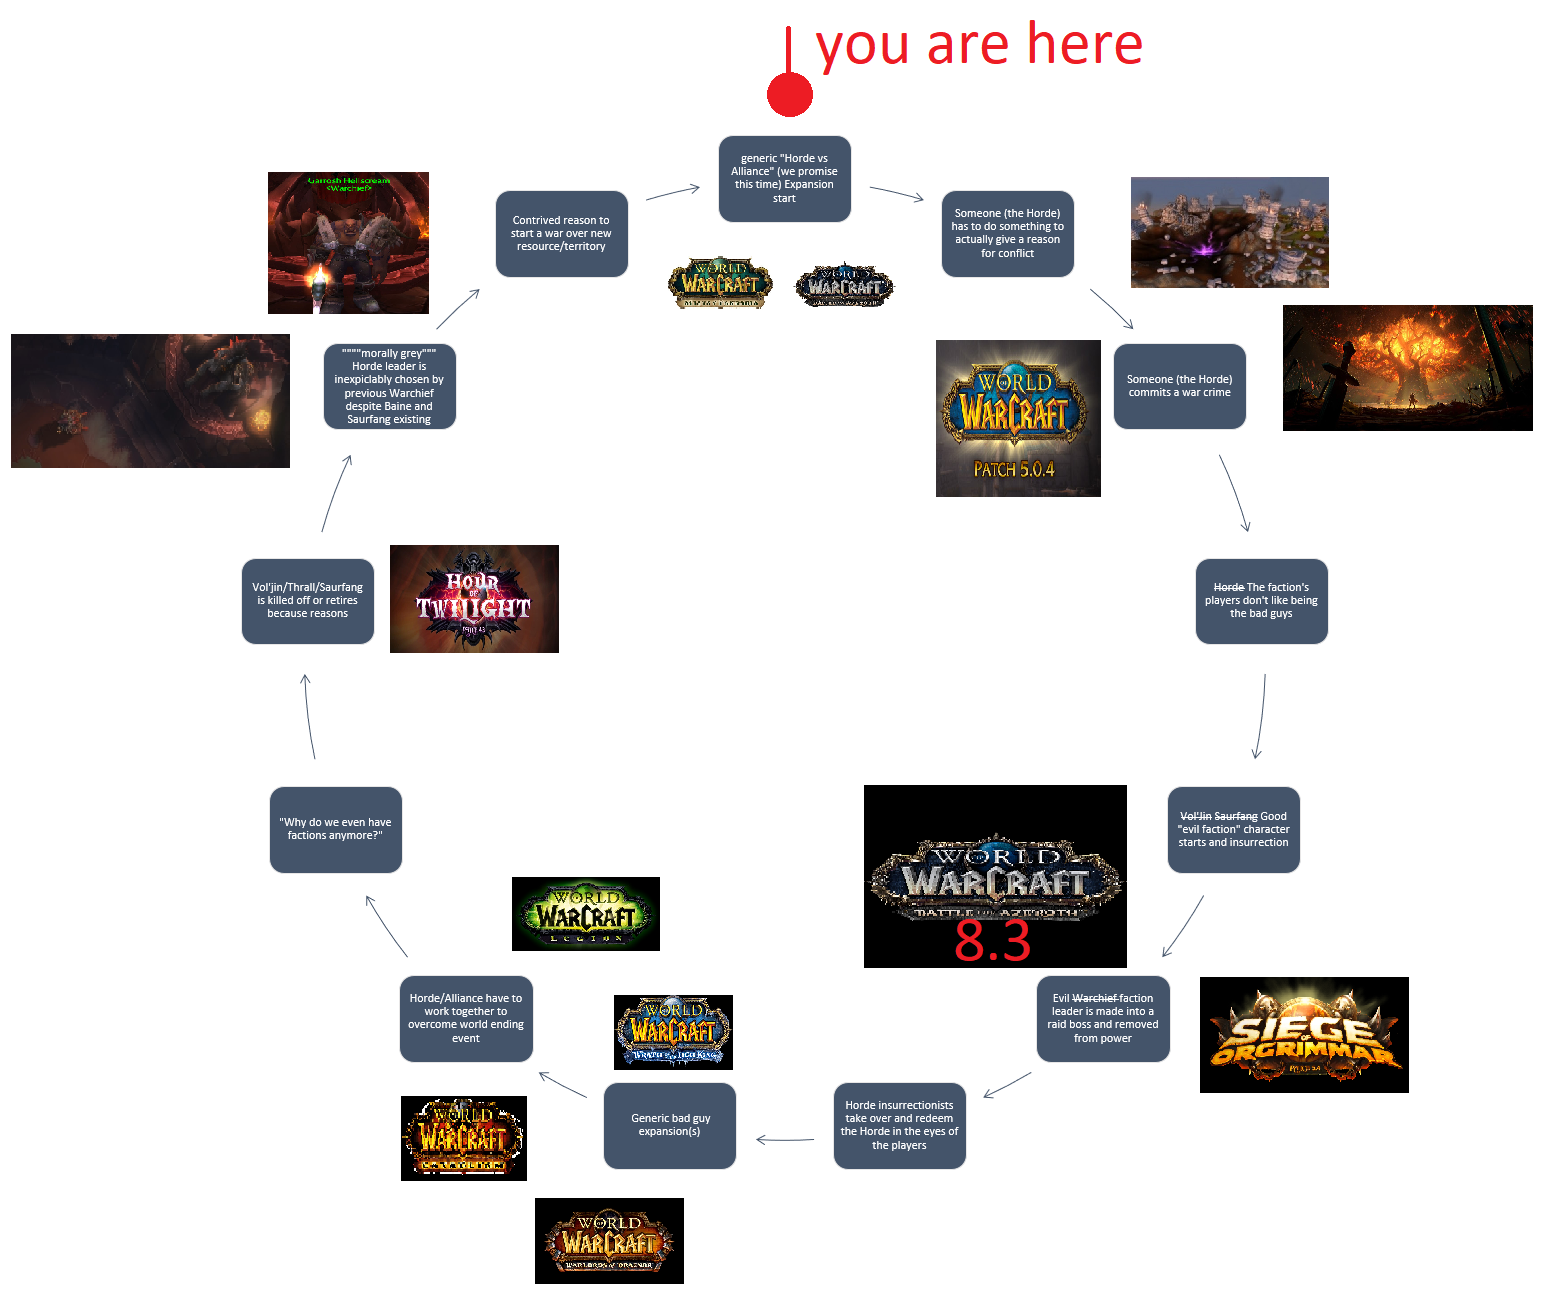 WoW Circle of Hatred Meme